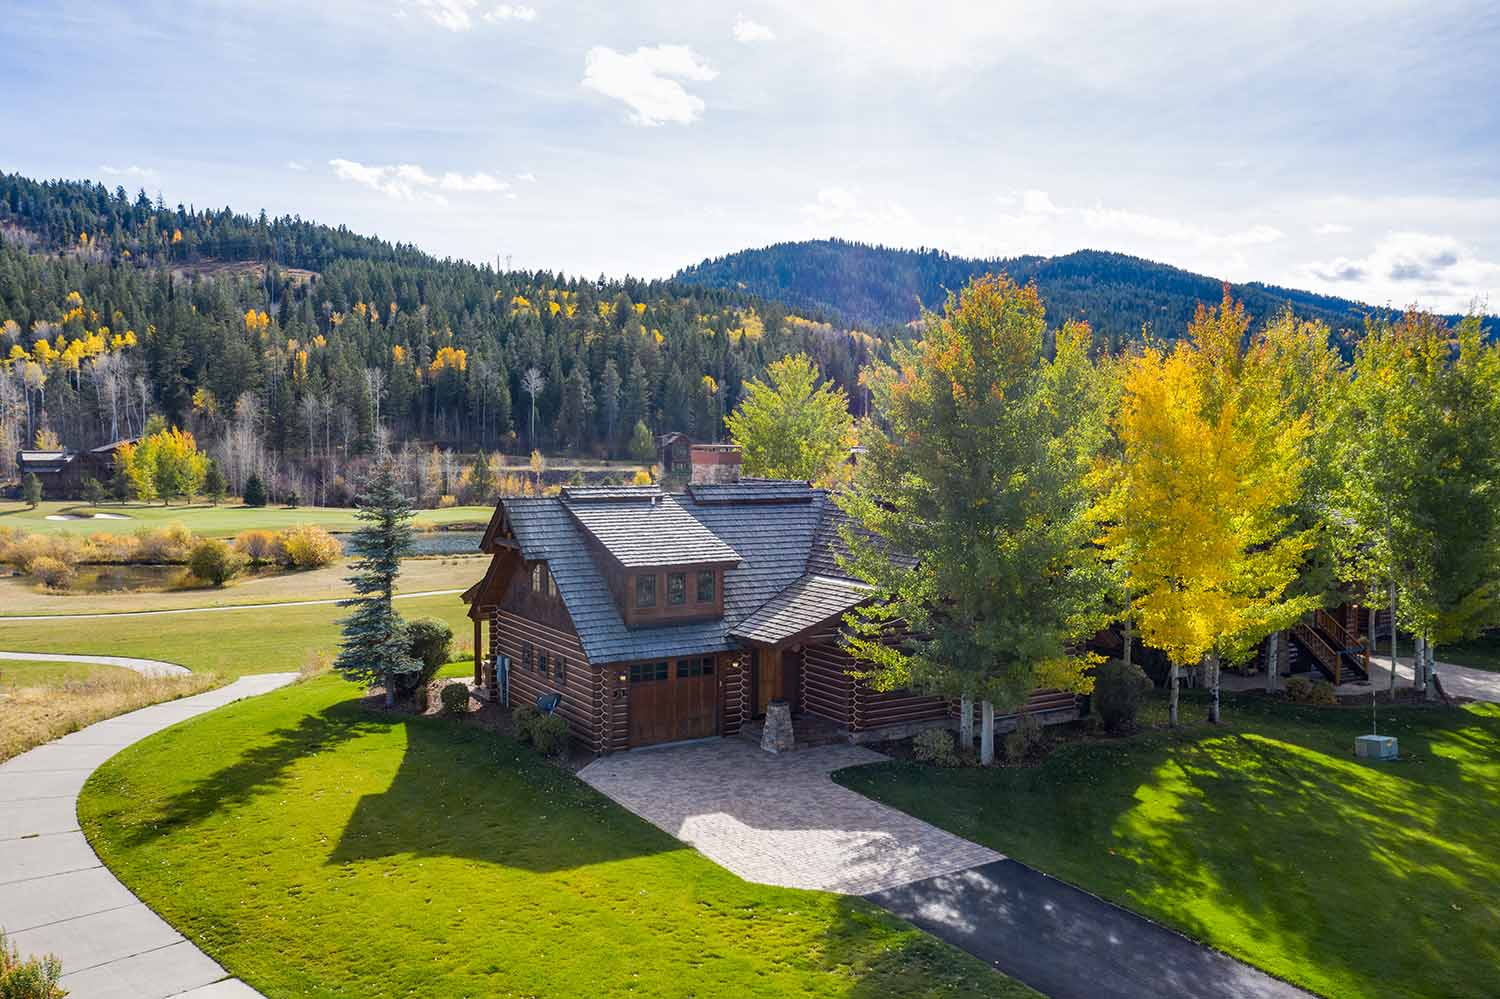 Moose Log Cabin for Rent - Victor Idaho